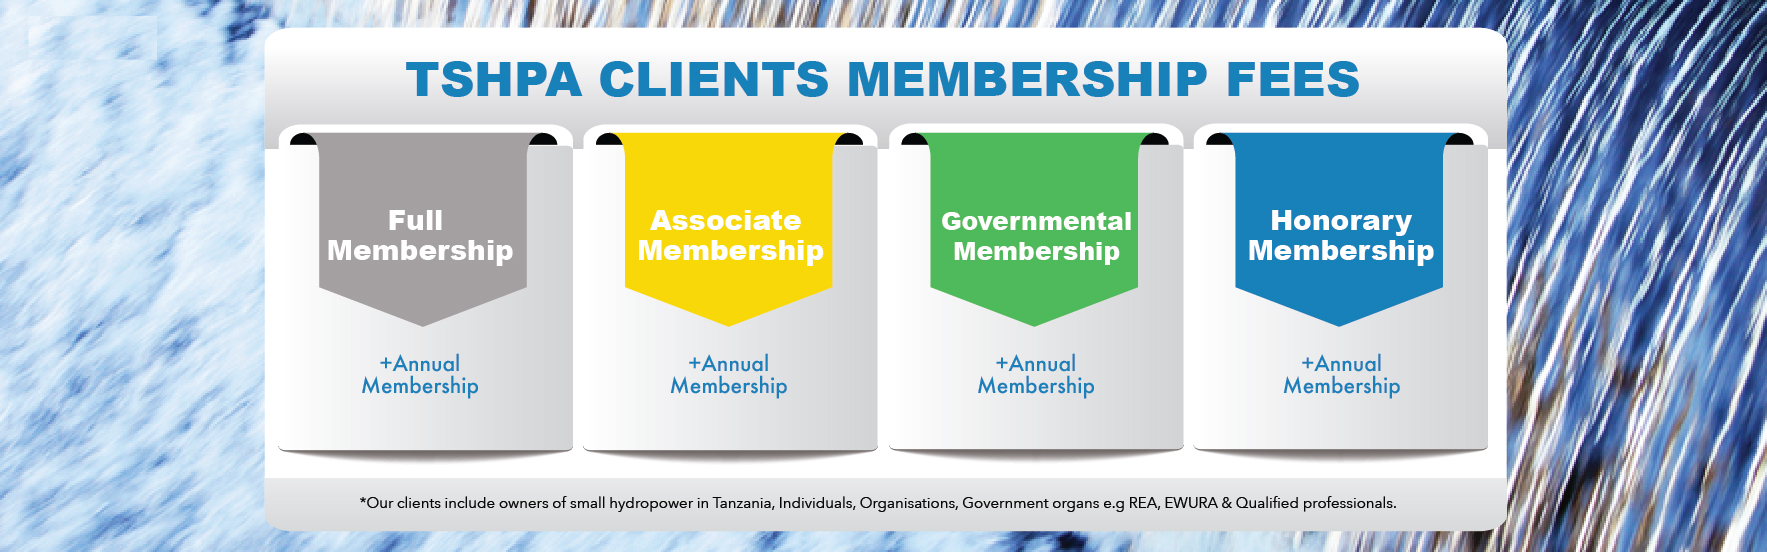 Our Clients/Members – TSHPA